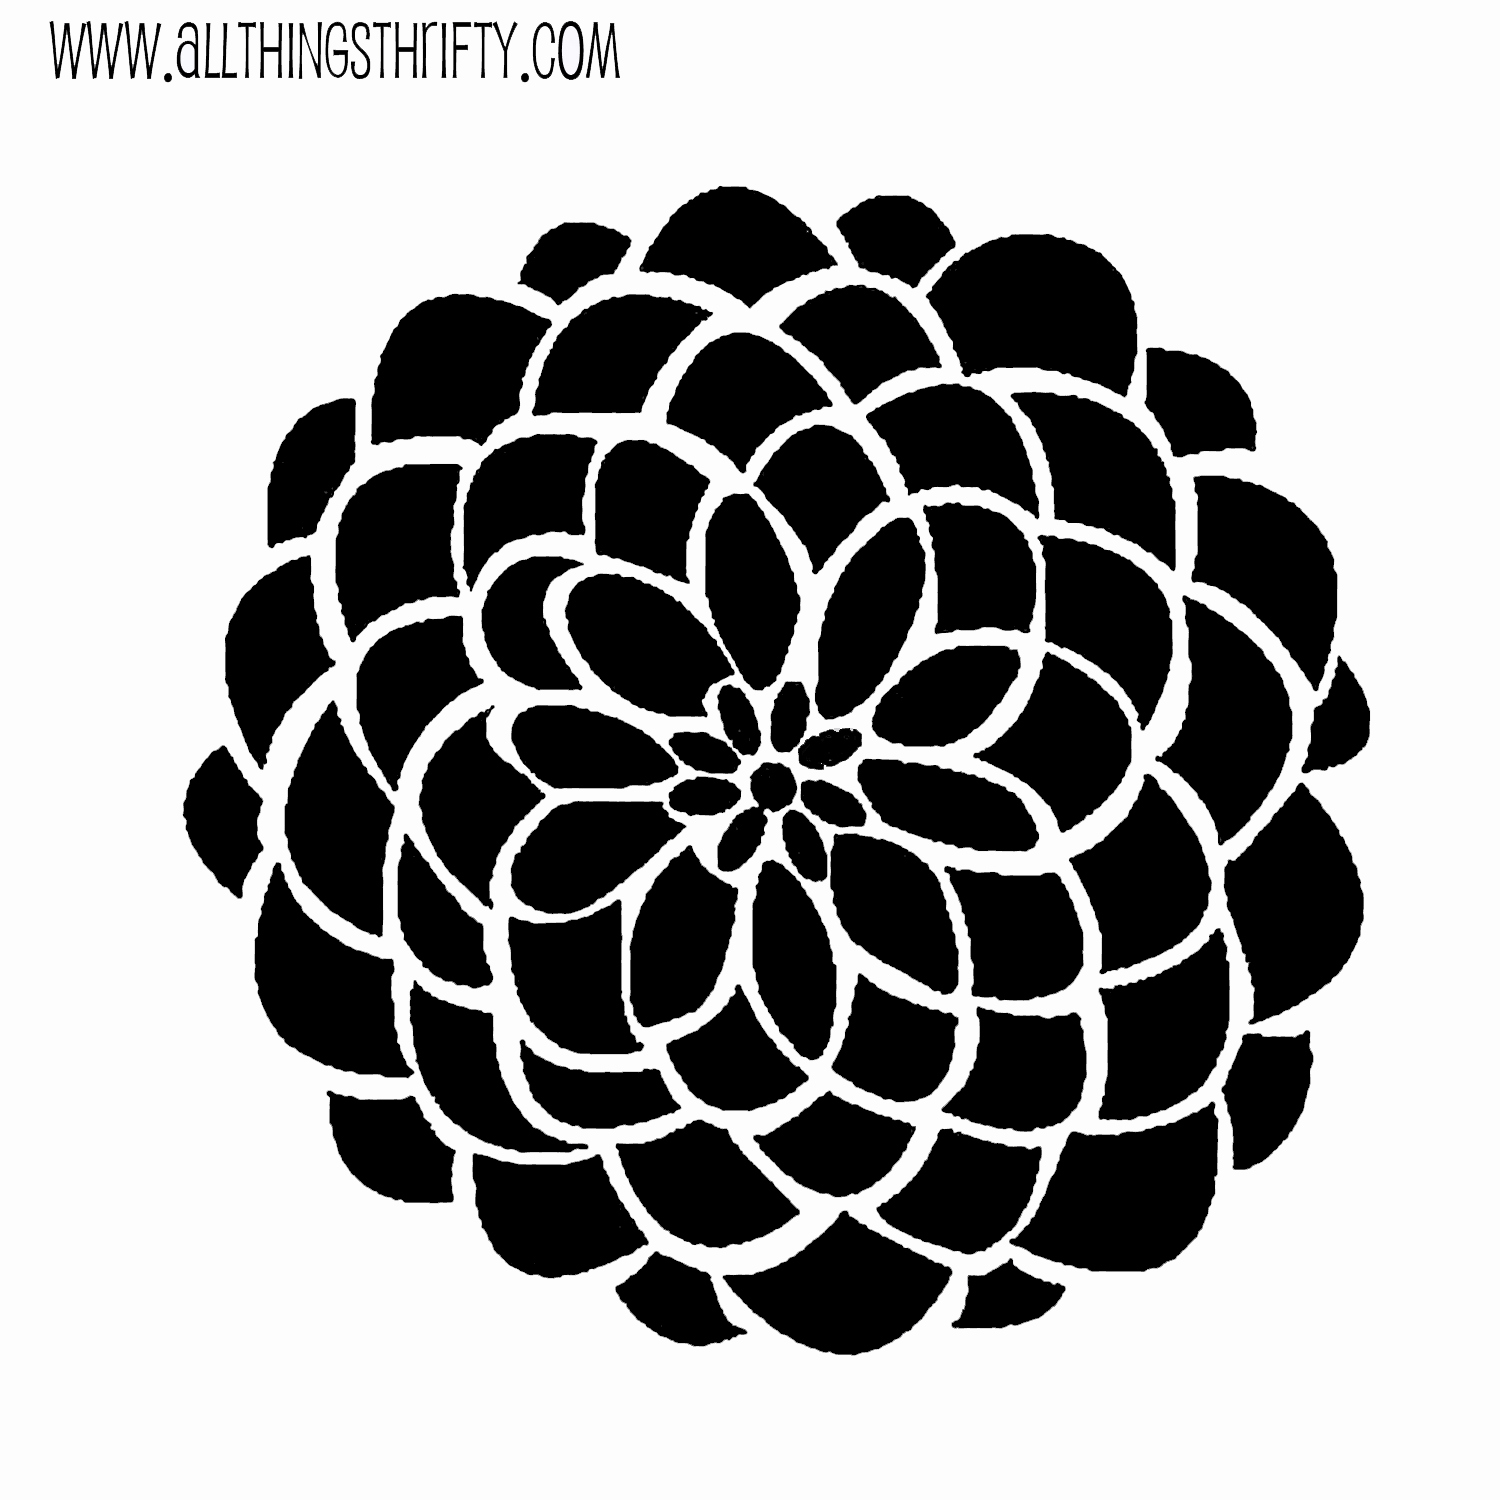 Free Printable Stencils for Painting Unique Stencil Patterns Just for You